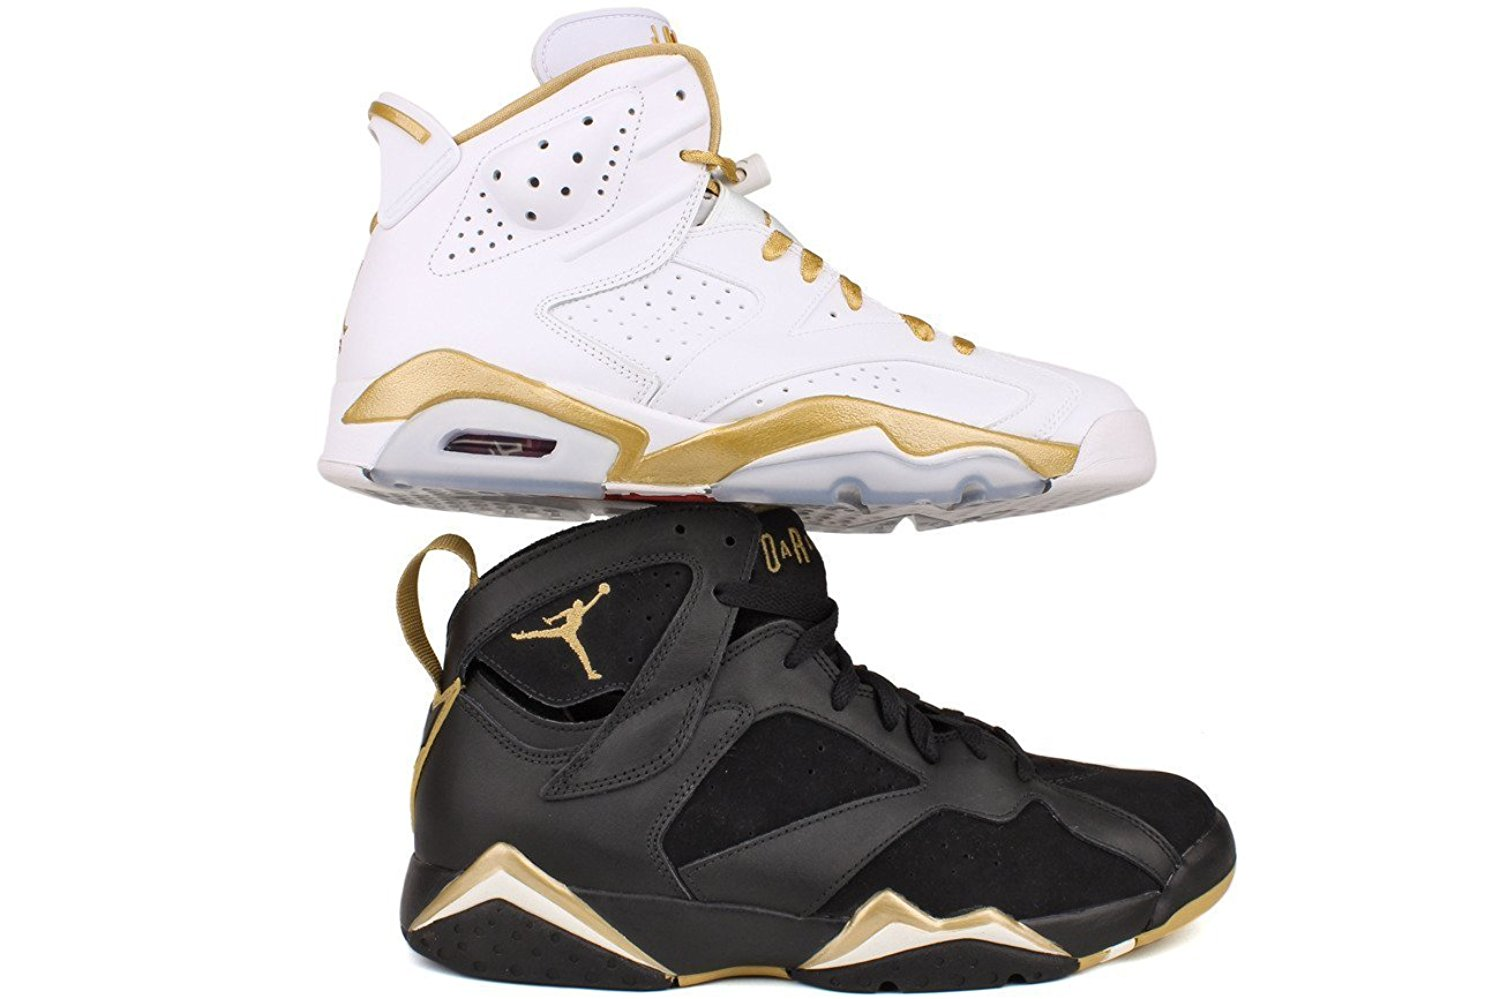 reputable site 738bf 21ce2 Get Quotations · Nike Mens Air Jordan 6 Gold Medal Golden Moments Pack  535357-935